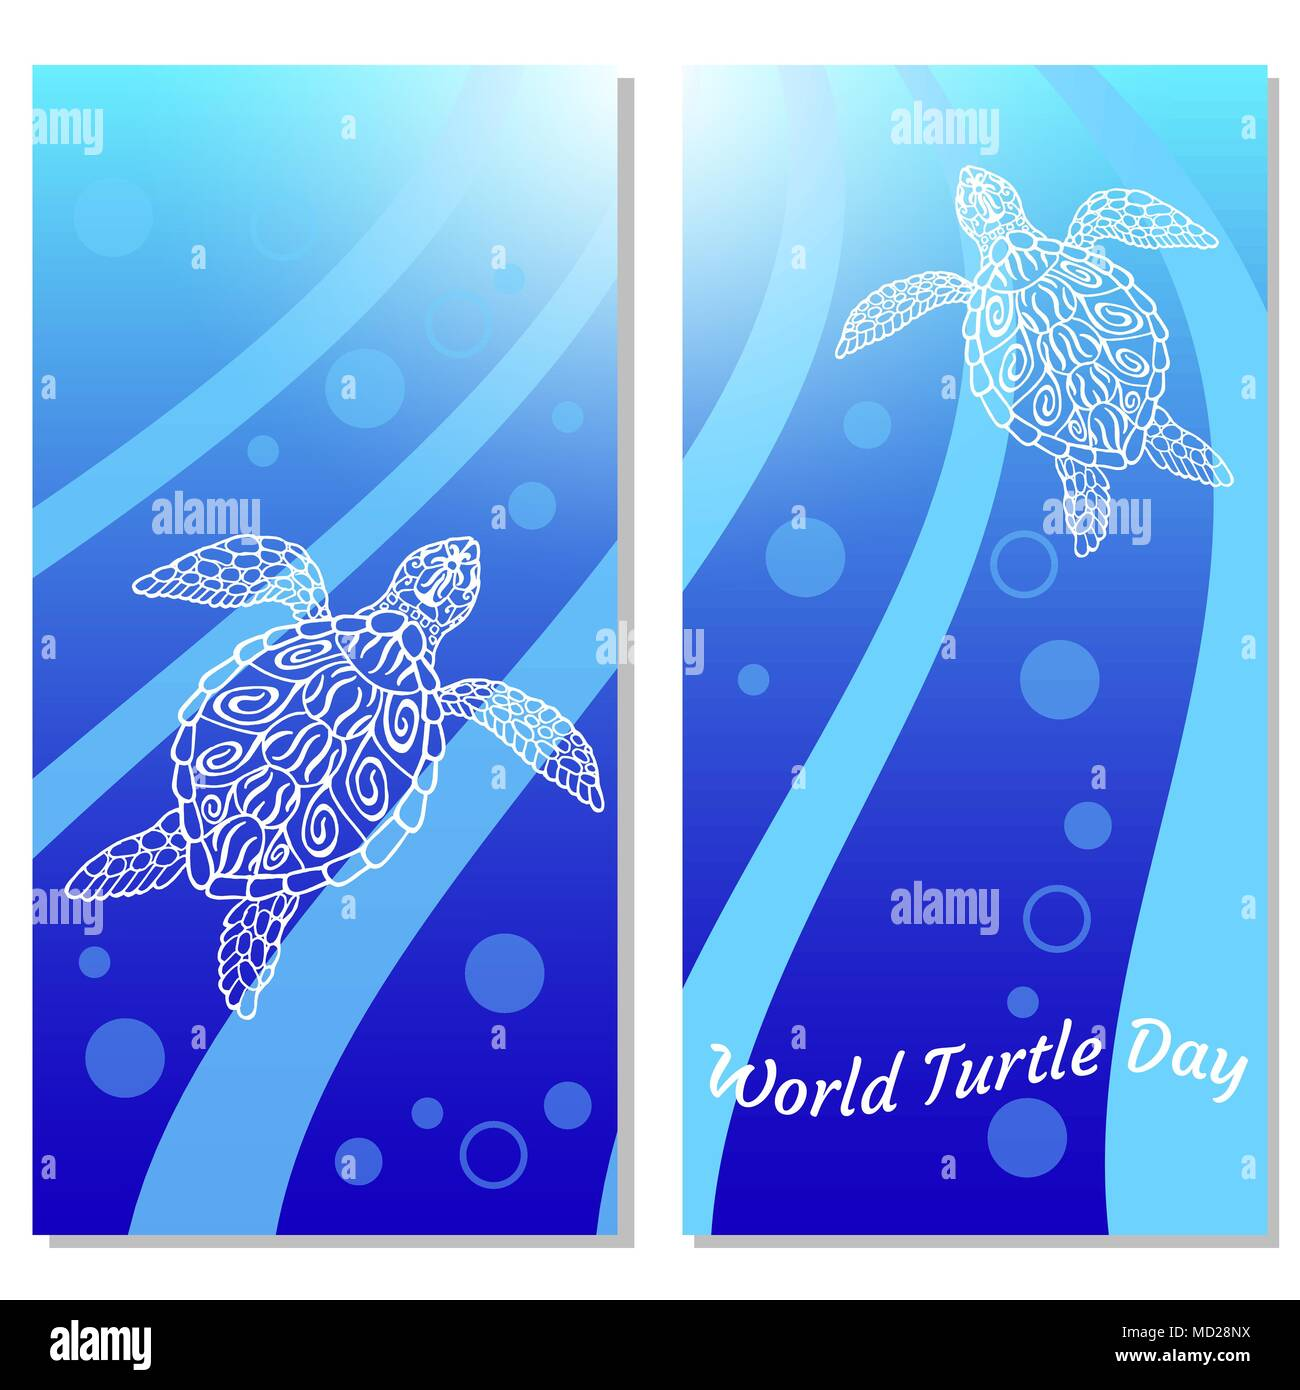 World Turtle Day. Water turtles swim up. Rays, bubbles, light. Drawing in ethnic aboriginal style. Blue background. Flyers for event participants. Stock Vector